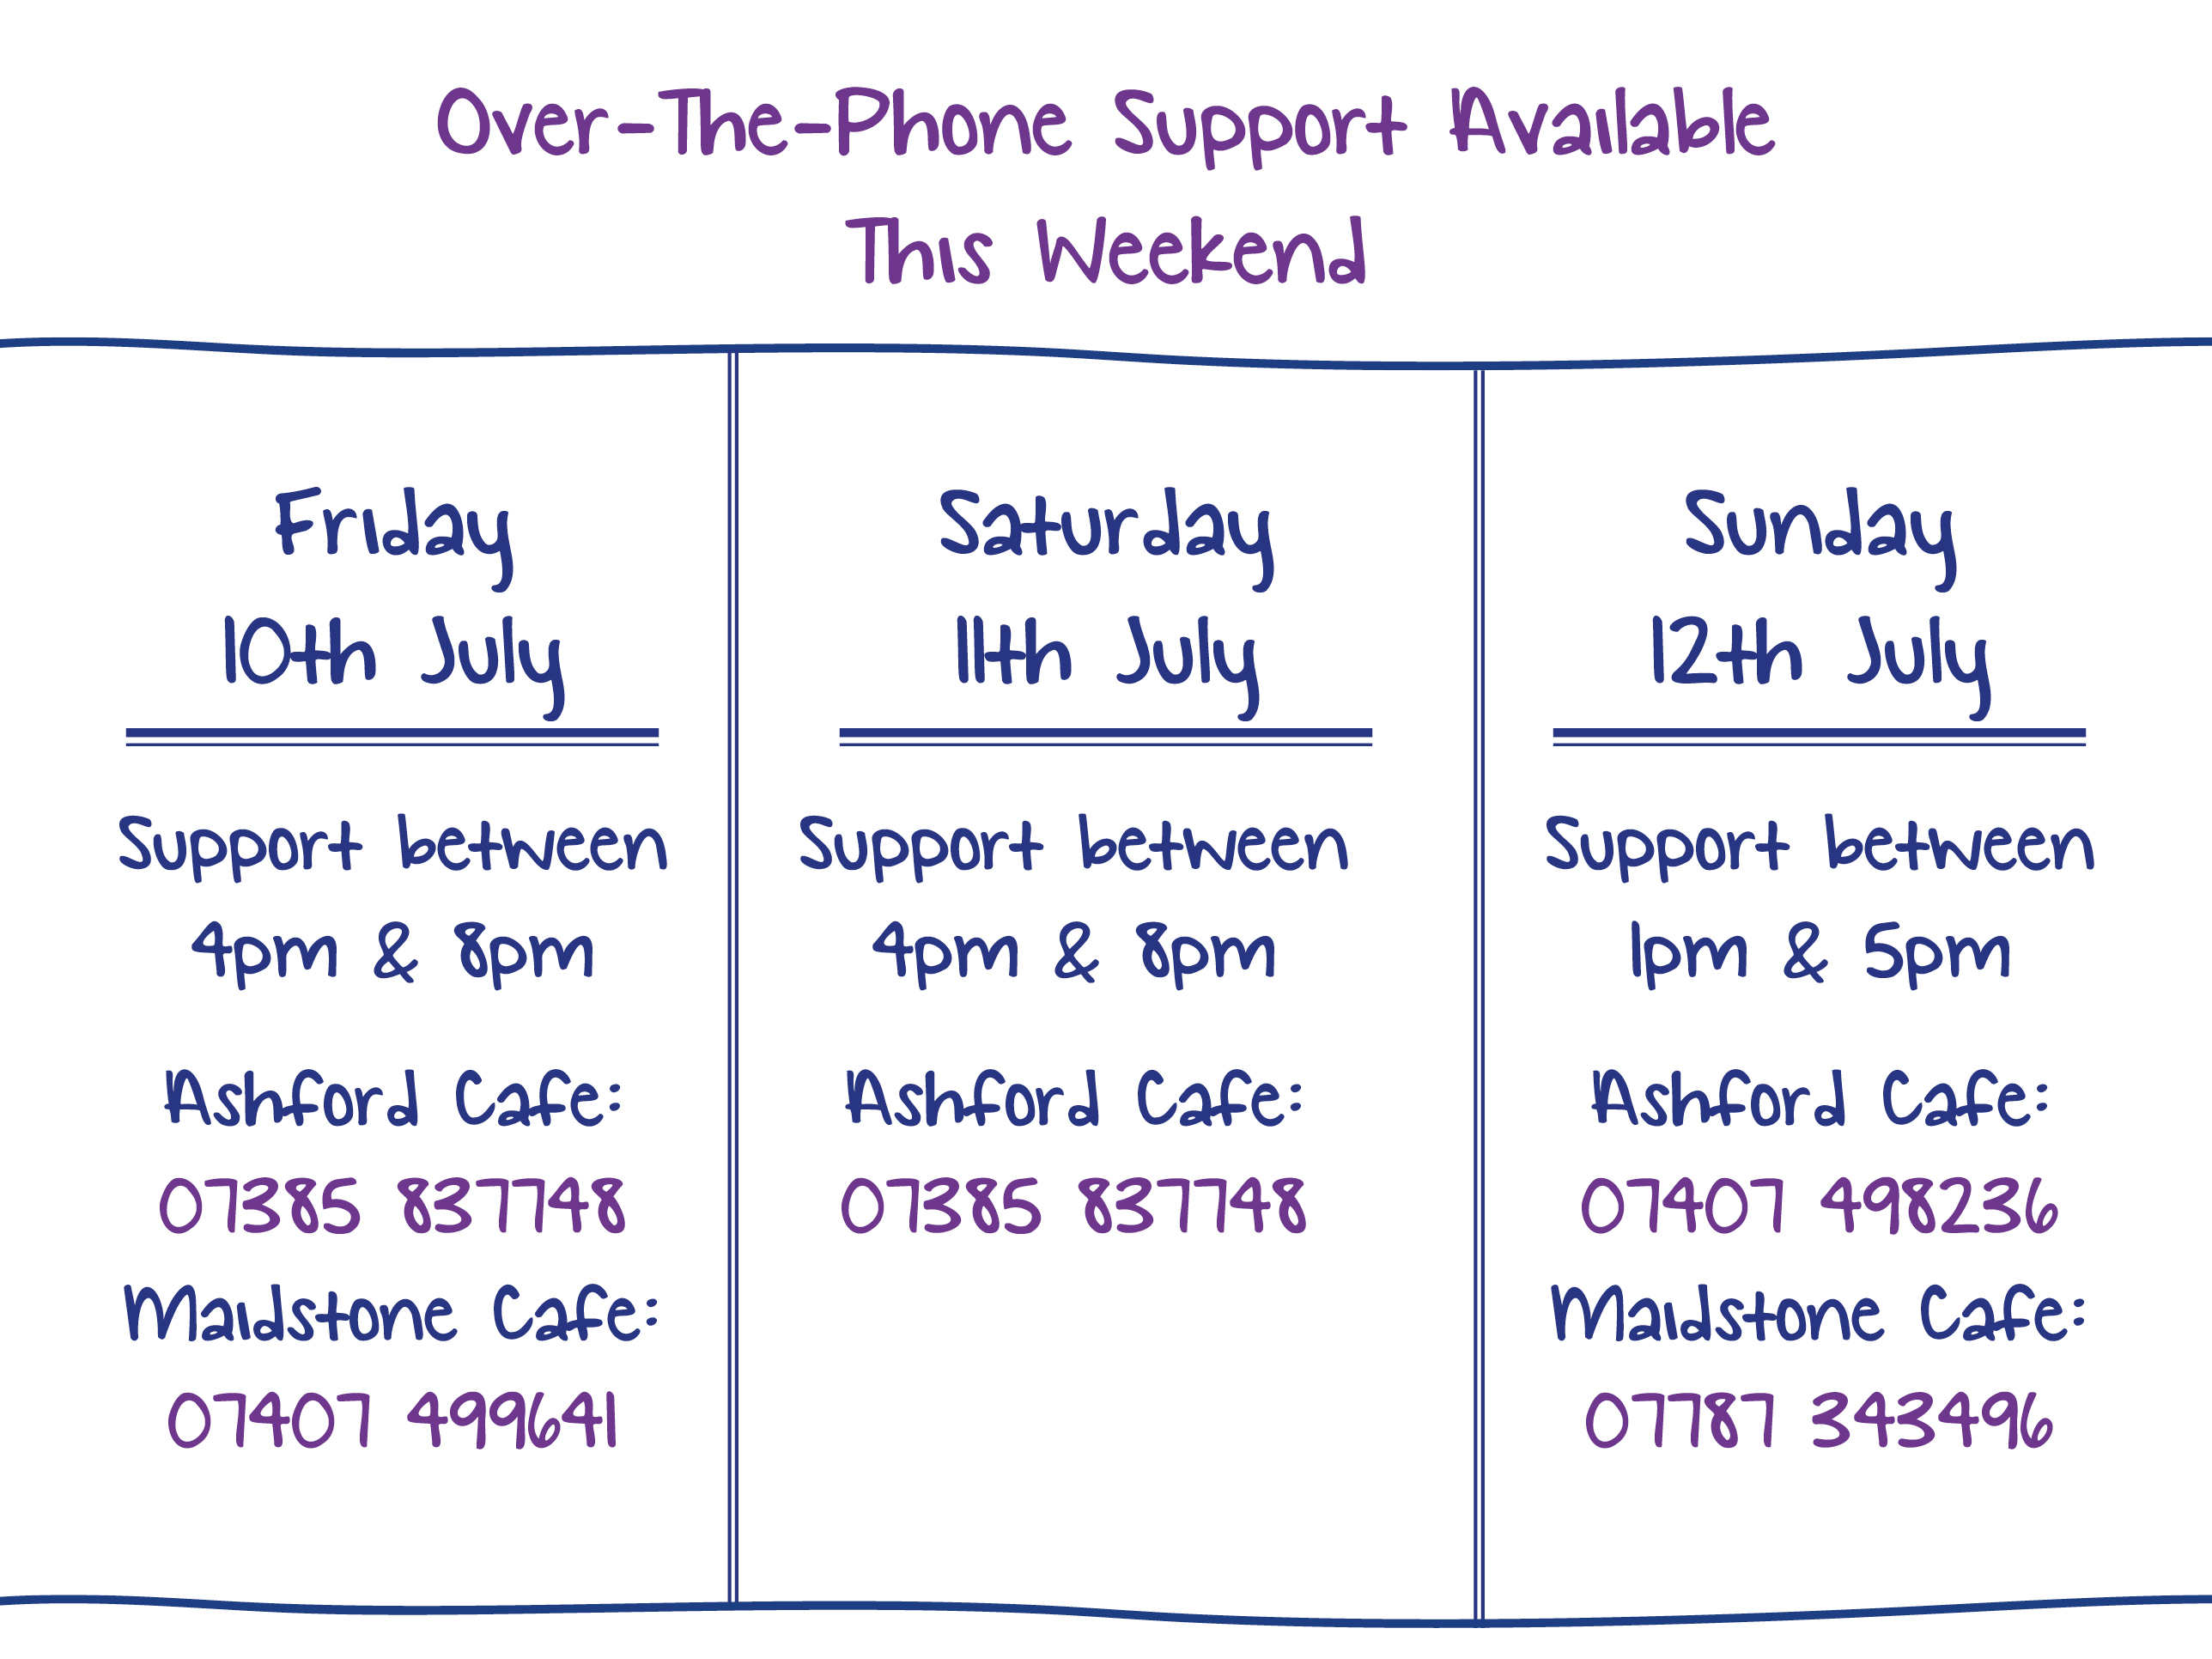 Over-The-Phone Support Available This Weekend. Friday 10th July. Support between 4pm & 8pm Ashford Cafe: 07385 837748 Maidstone Cafe: 07407 499641. Saturday 11th July. Support between 4pm & 8pm Ashford Cafe: 07385 837748. Sunday 12th July. Support between 1pm & 5pm Ashford Cafe: 07407 498236 Maidstone Cafe: 07787 343496.